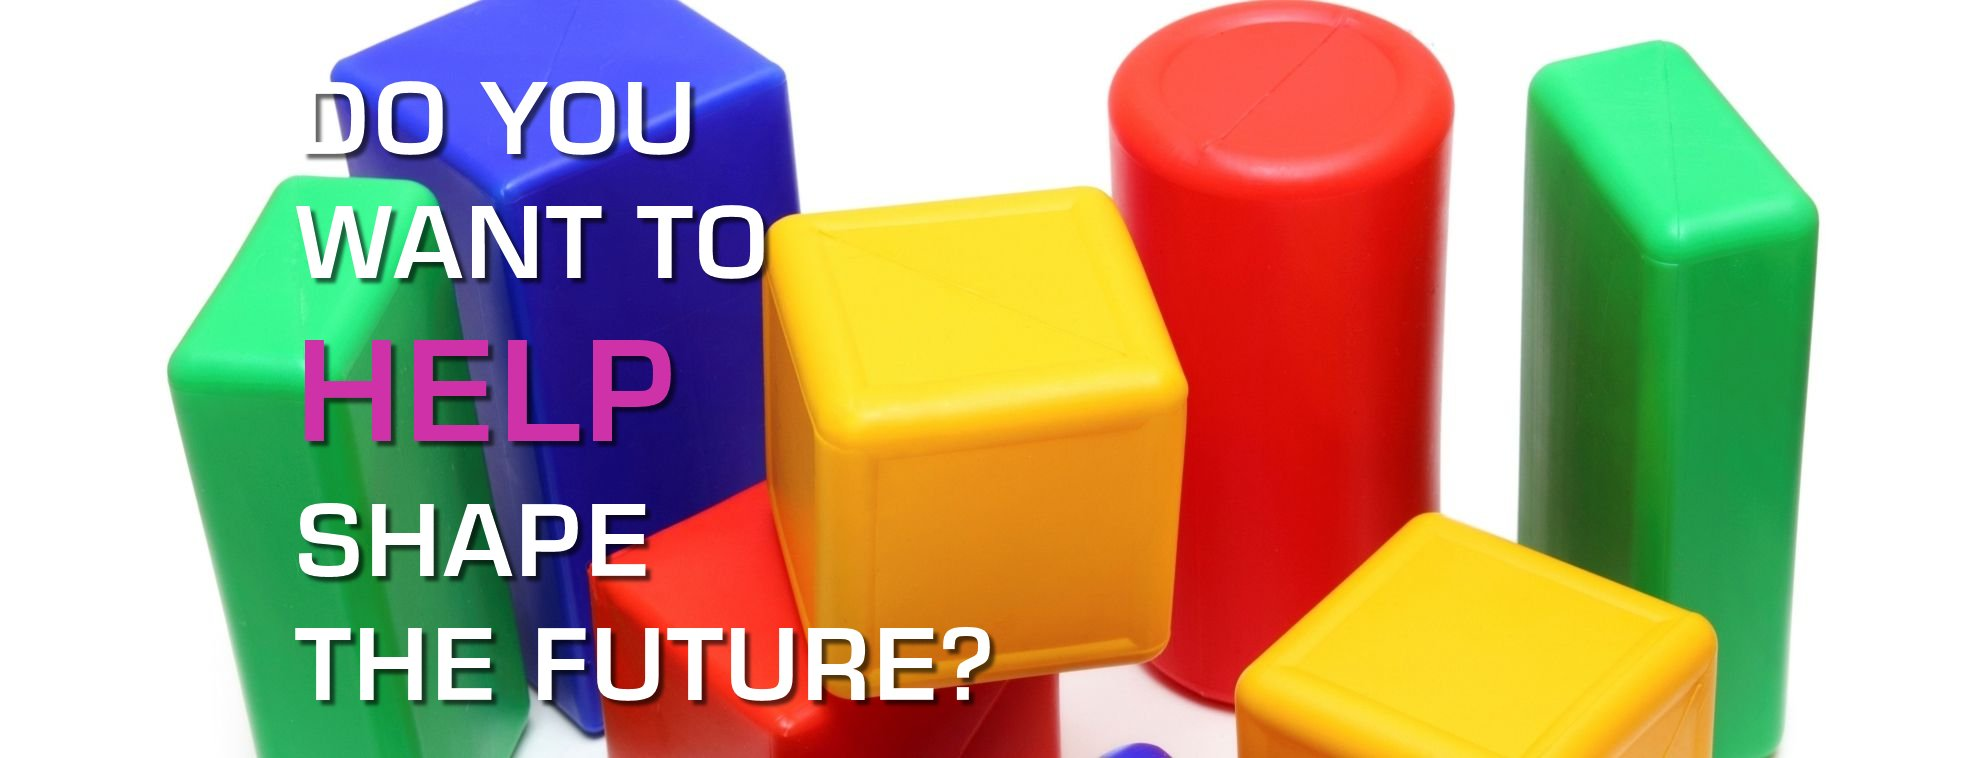 Do you want to help shape the future?